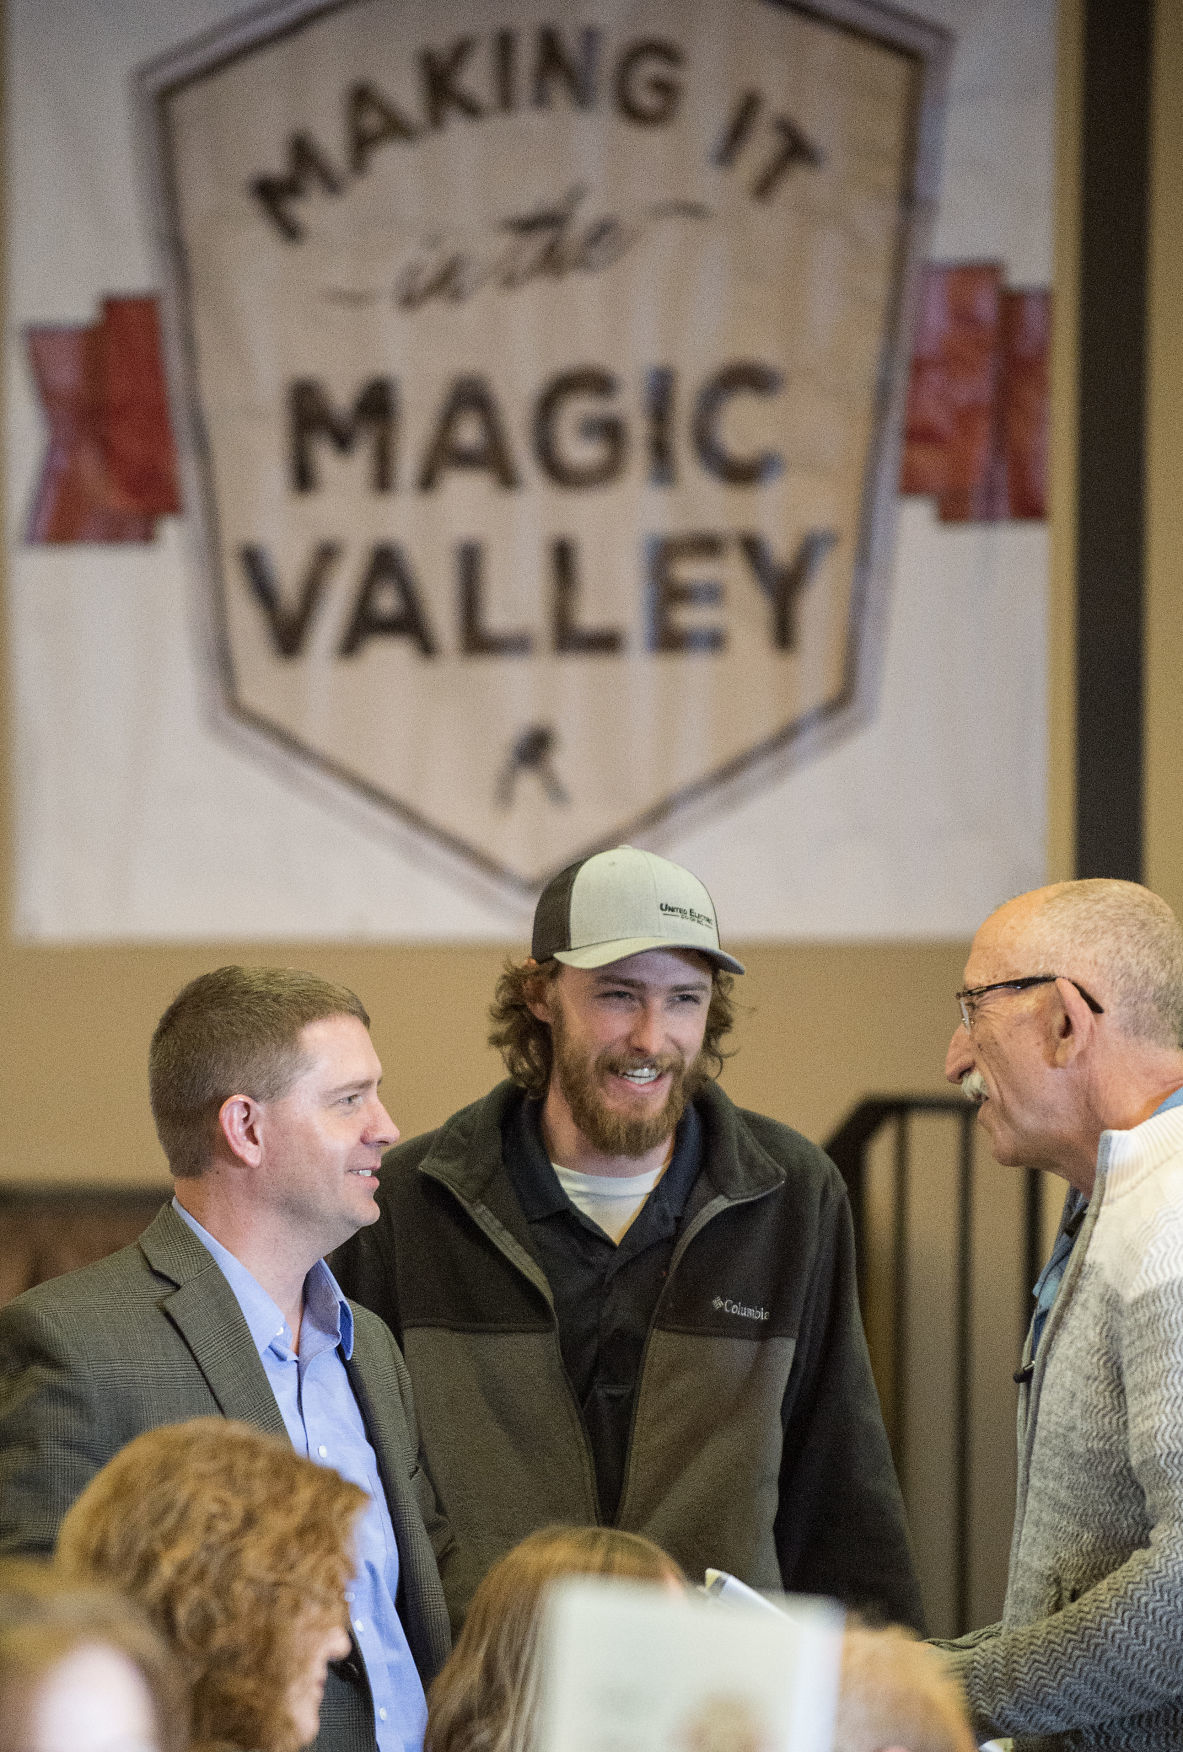 Making it in the Magic Valley Awards